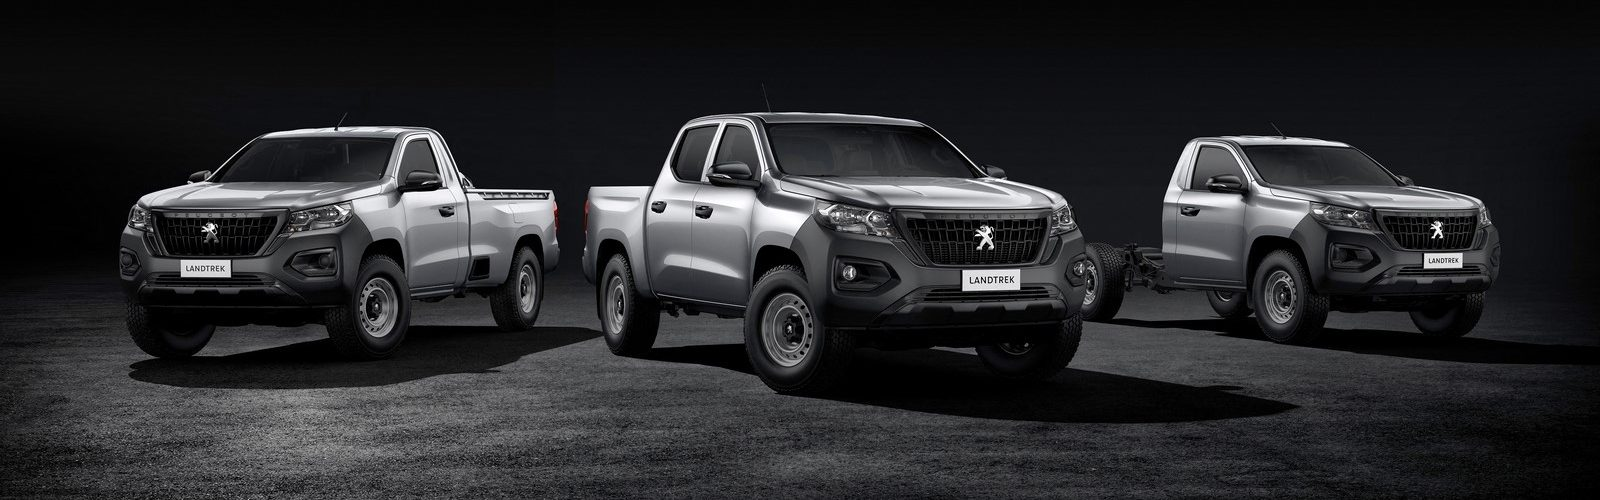 Peugeot Landtrek Pick-up